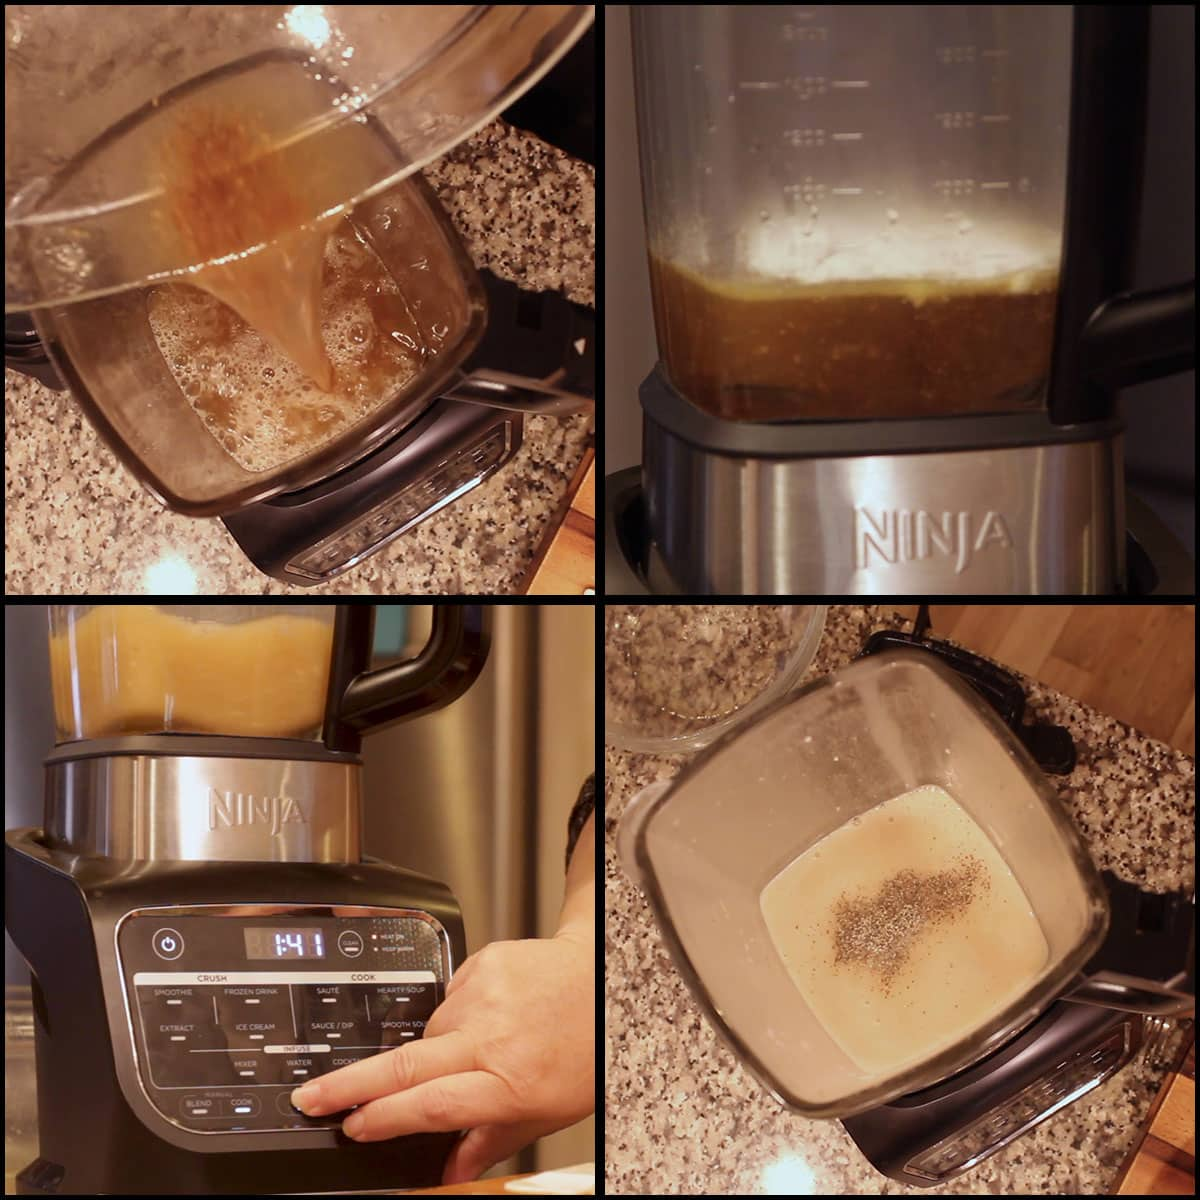 showing the steps for making blender gravy